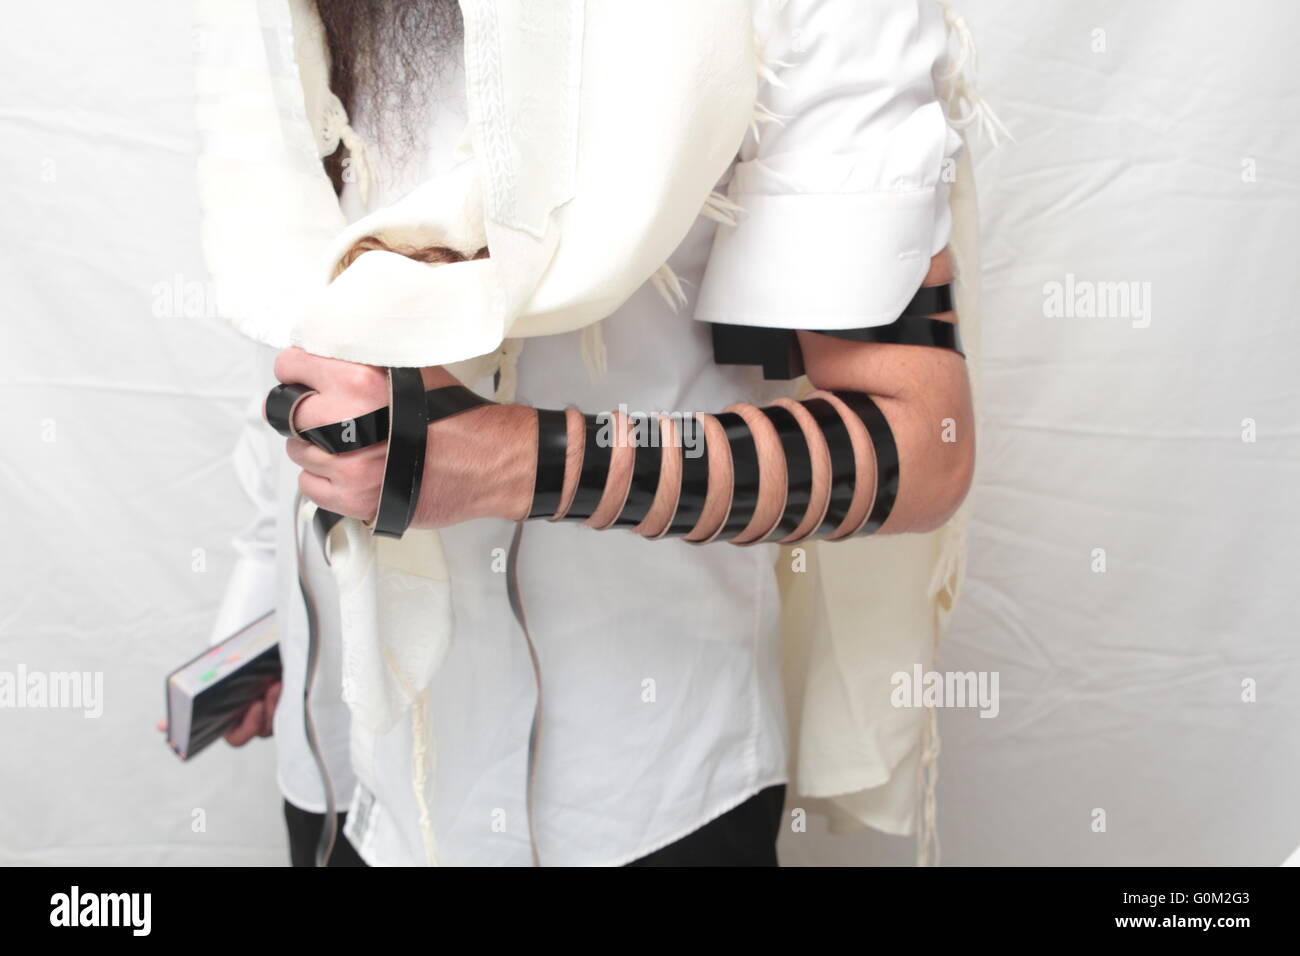 Jewish Man wrapped in tefillin pray . A religious orthodox Jew with arm-tefillin on his left hand prays - Stock Image